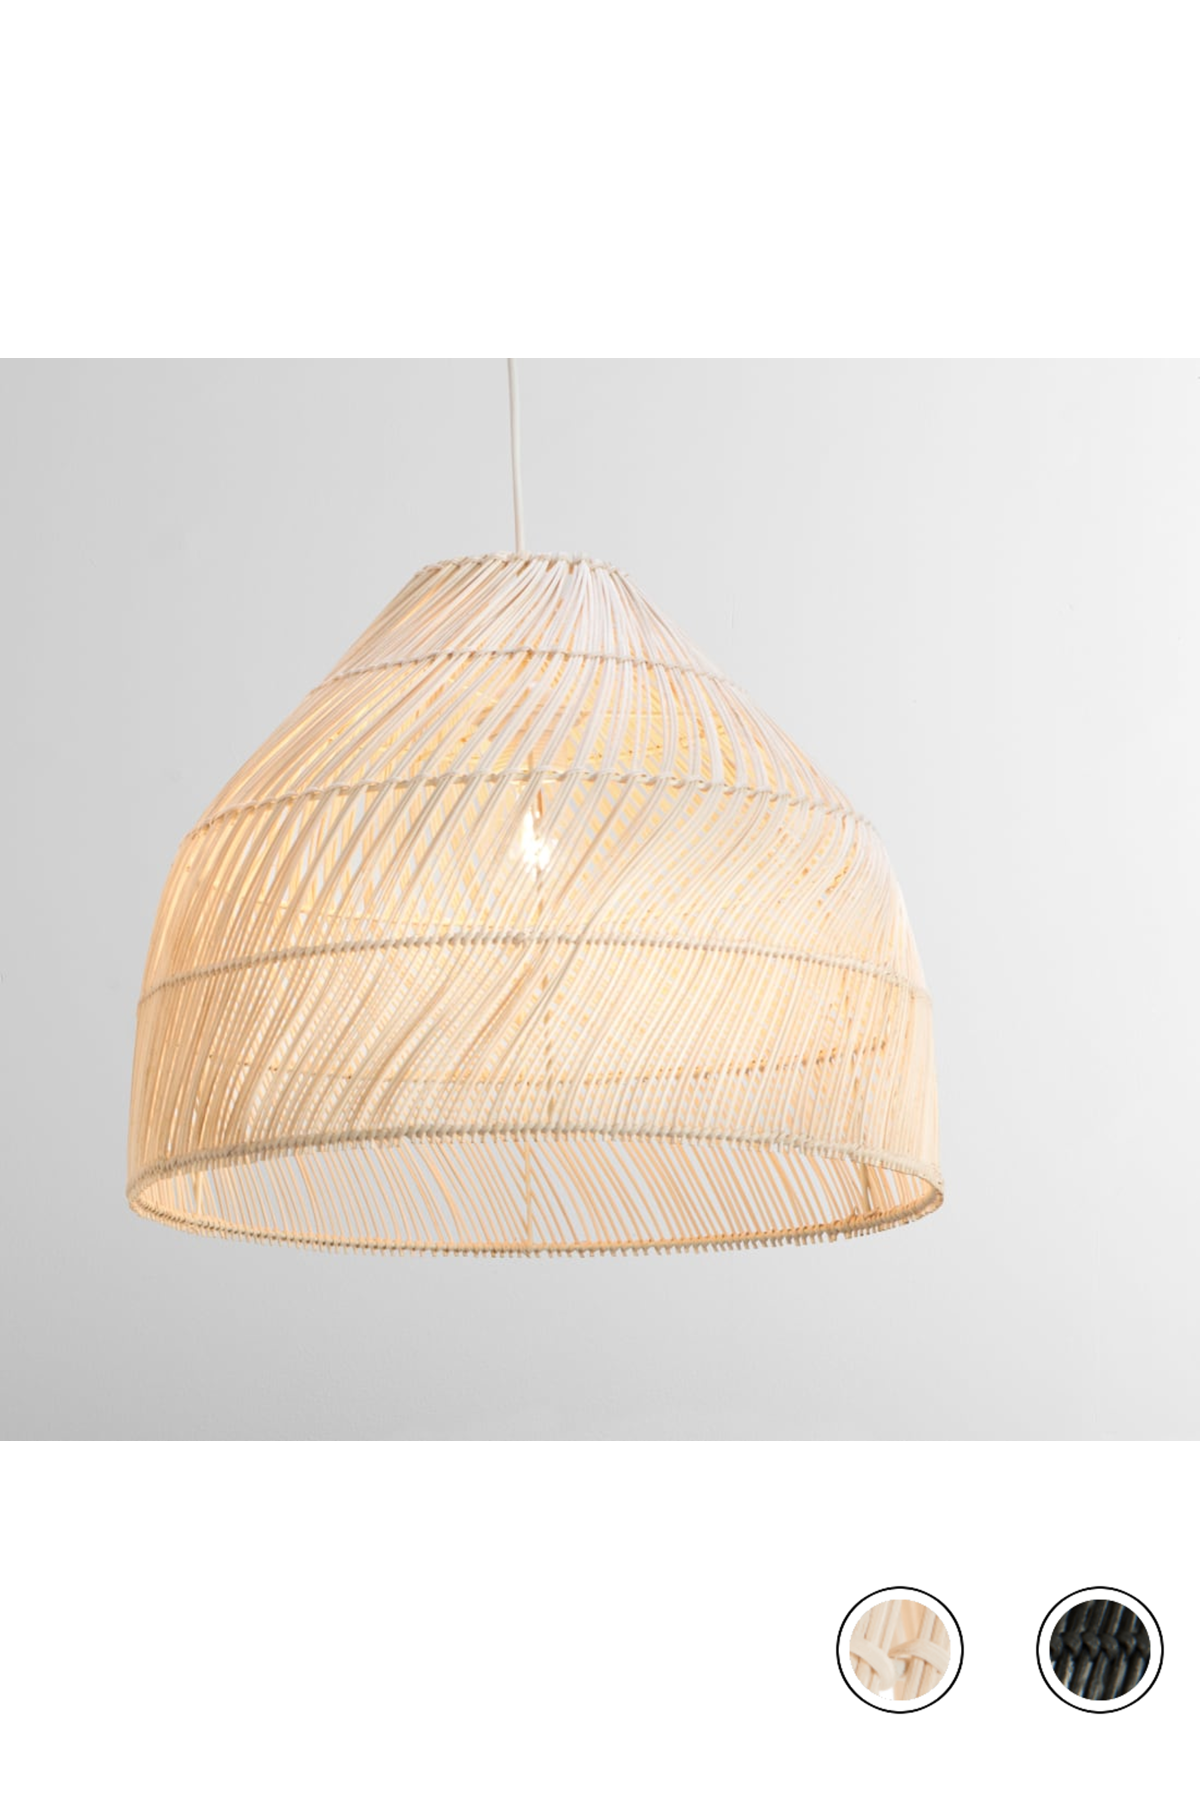 Made Shade Small Natural Rattan Neutral Express Delivery Java Lamp Shades Collection From Made Com Ceiling Lamp Shades Rattan Lamp Plug In Pendant Light